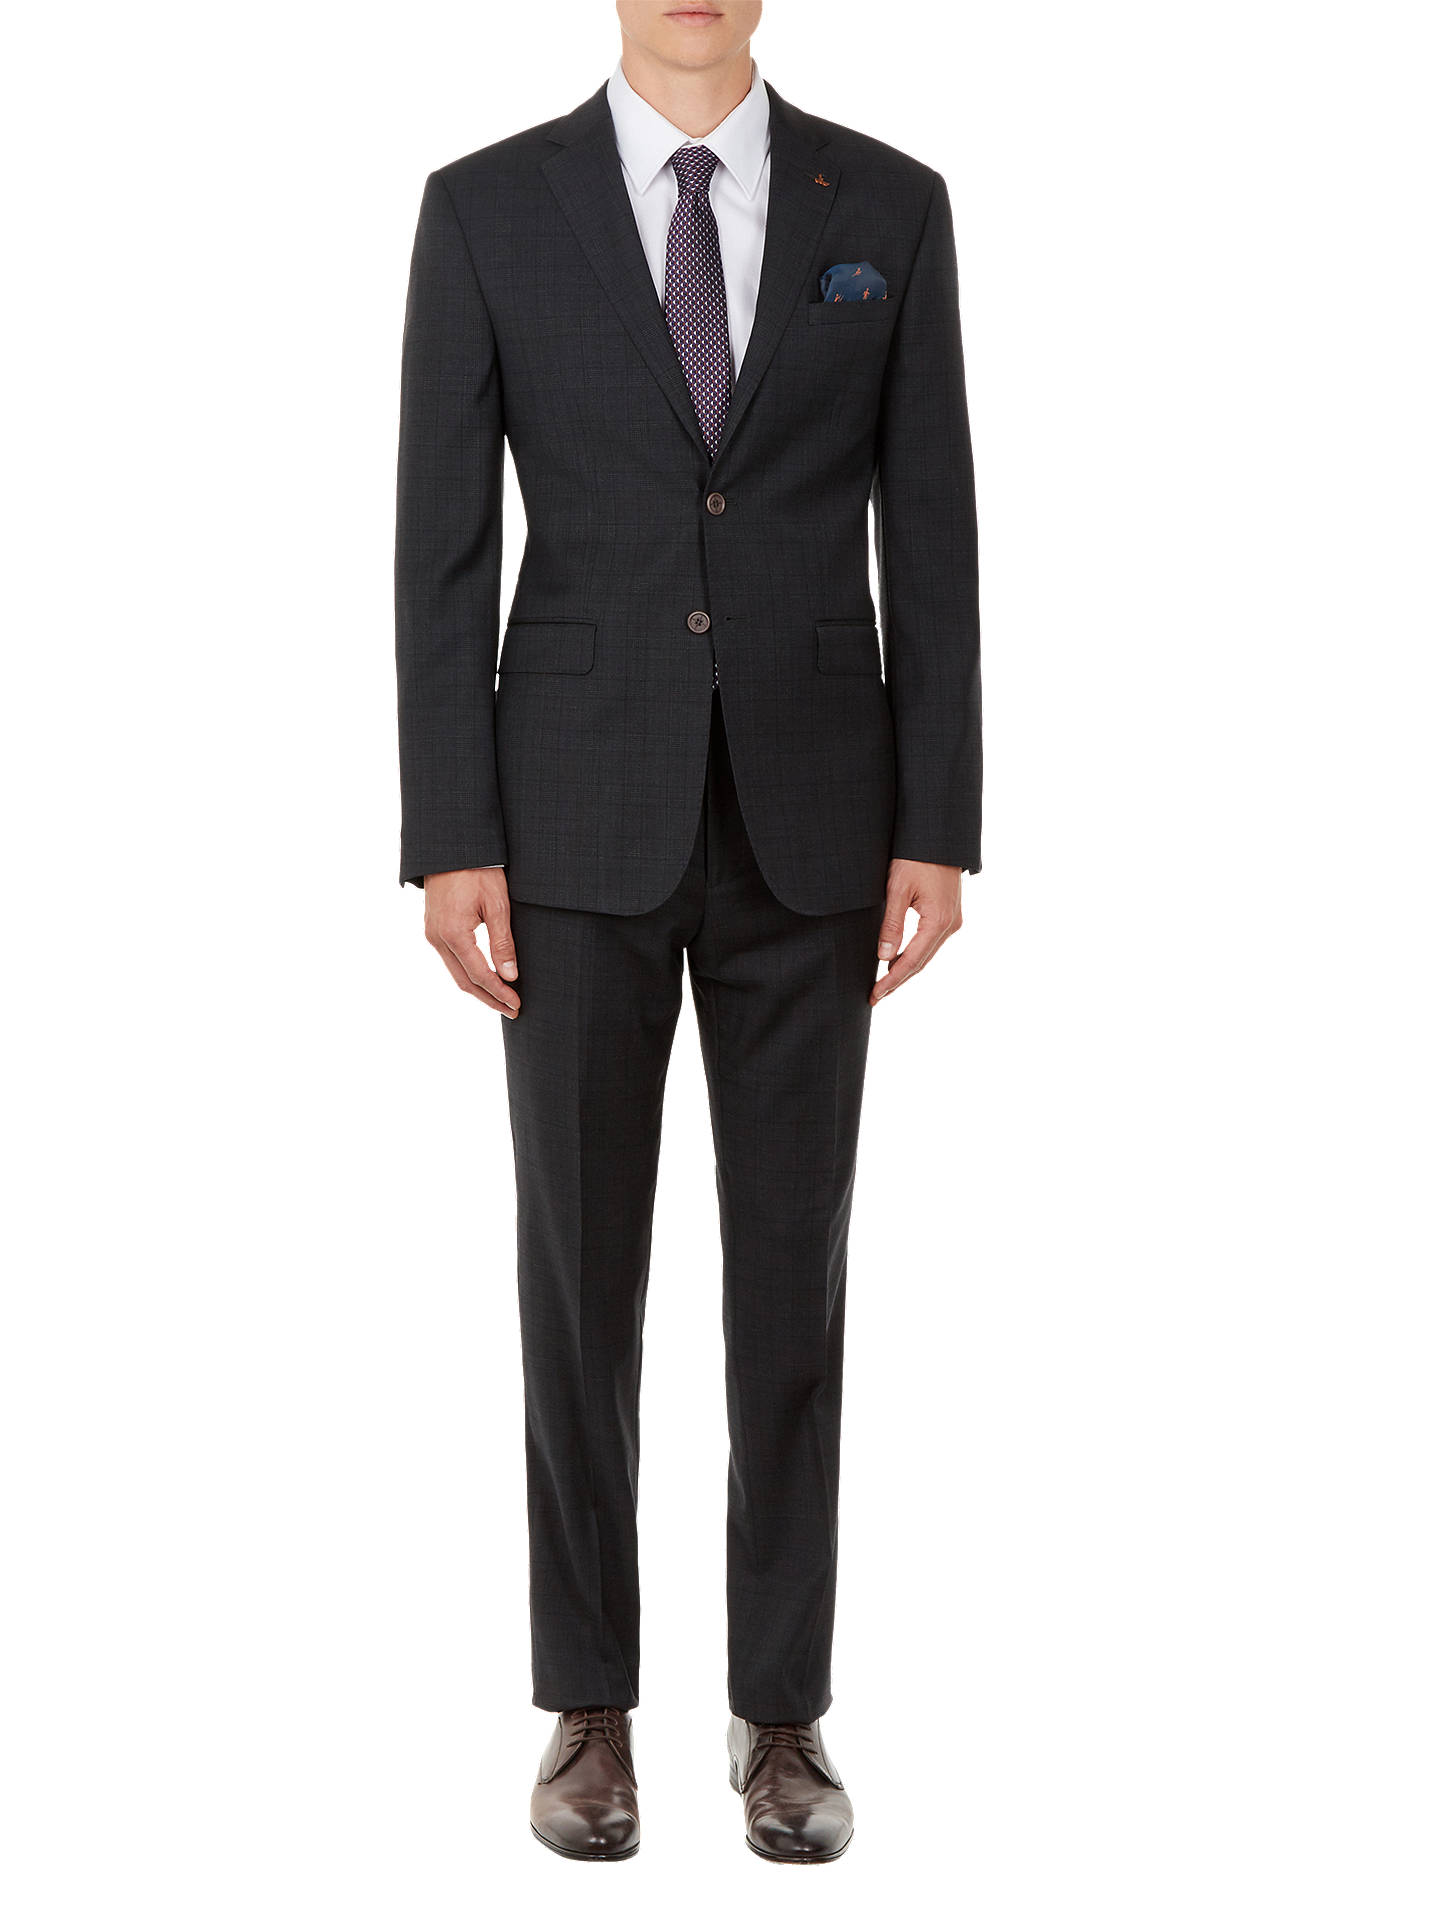 f0f64f0123ffdf Buy Ted Baker Performance Tivityj Tonal Check Suit Jacket